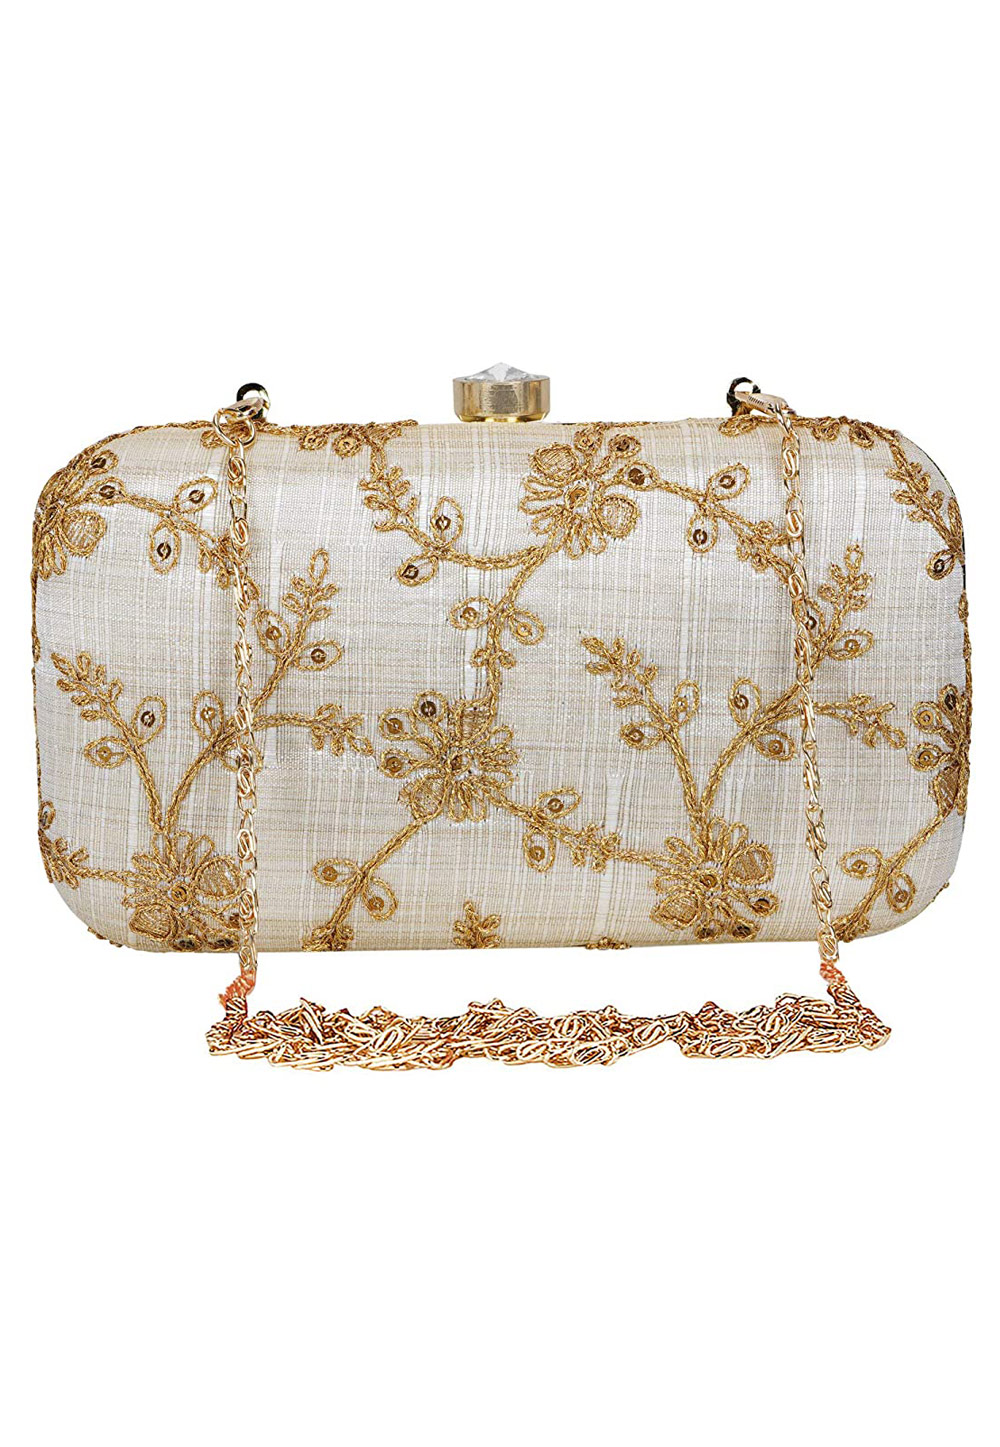 Off White Synthetic Embroidered Clutch 225772